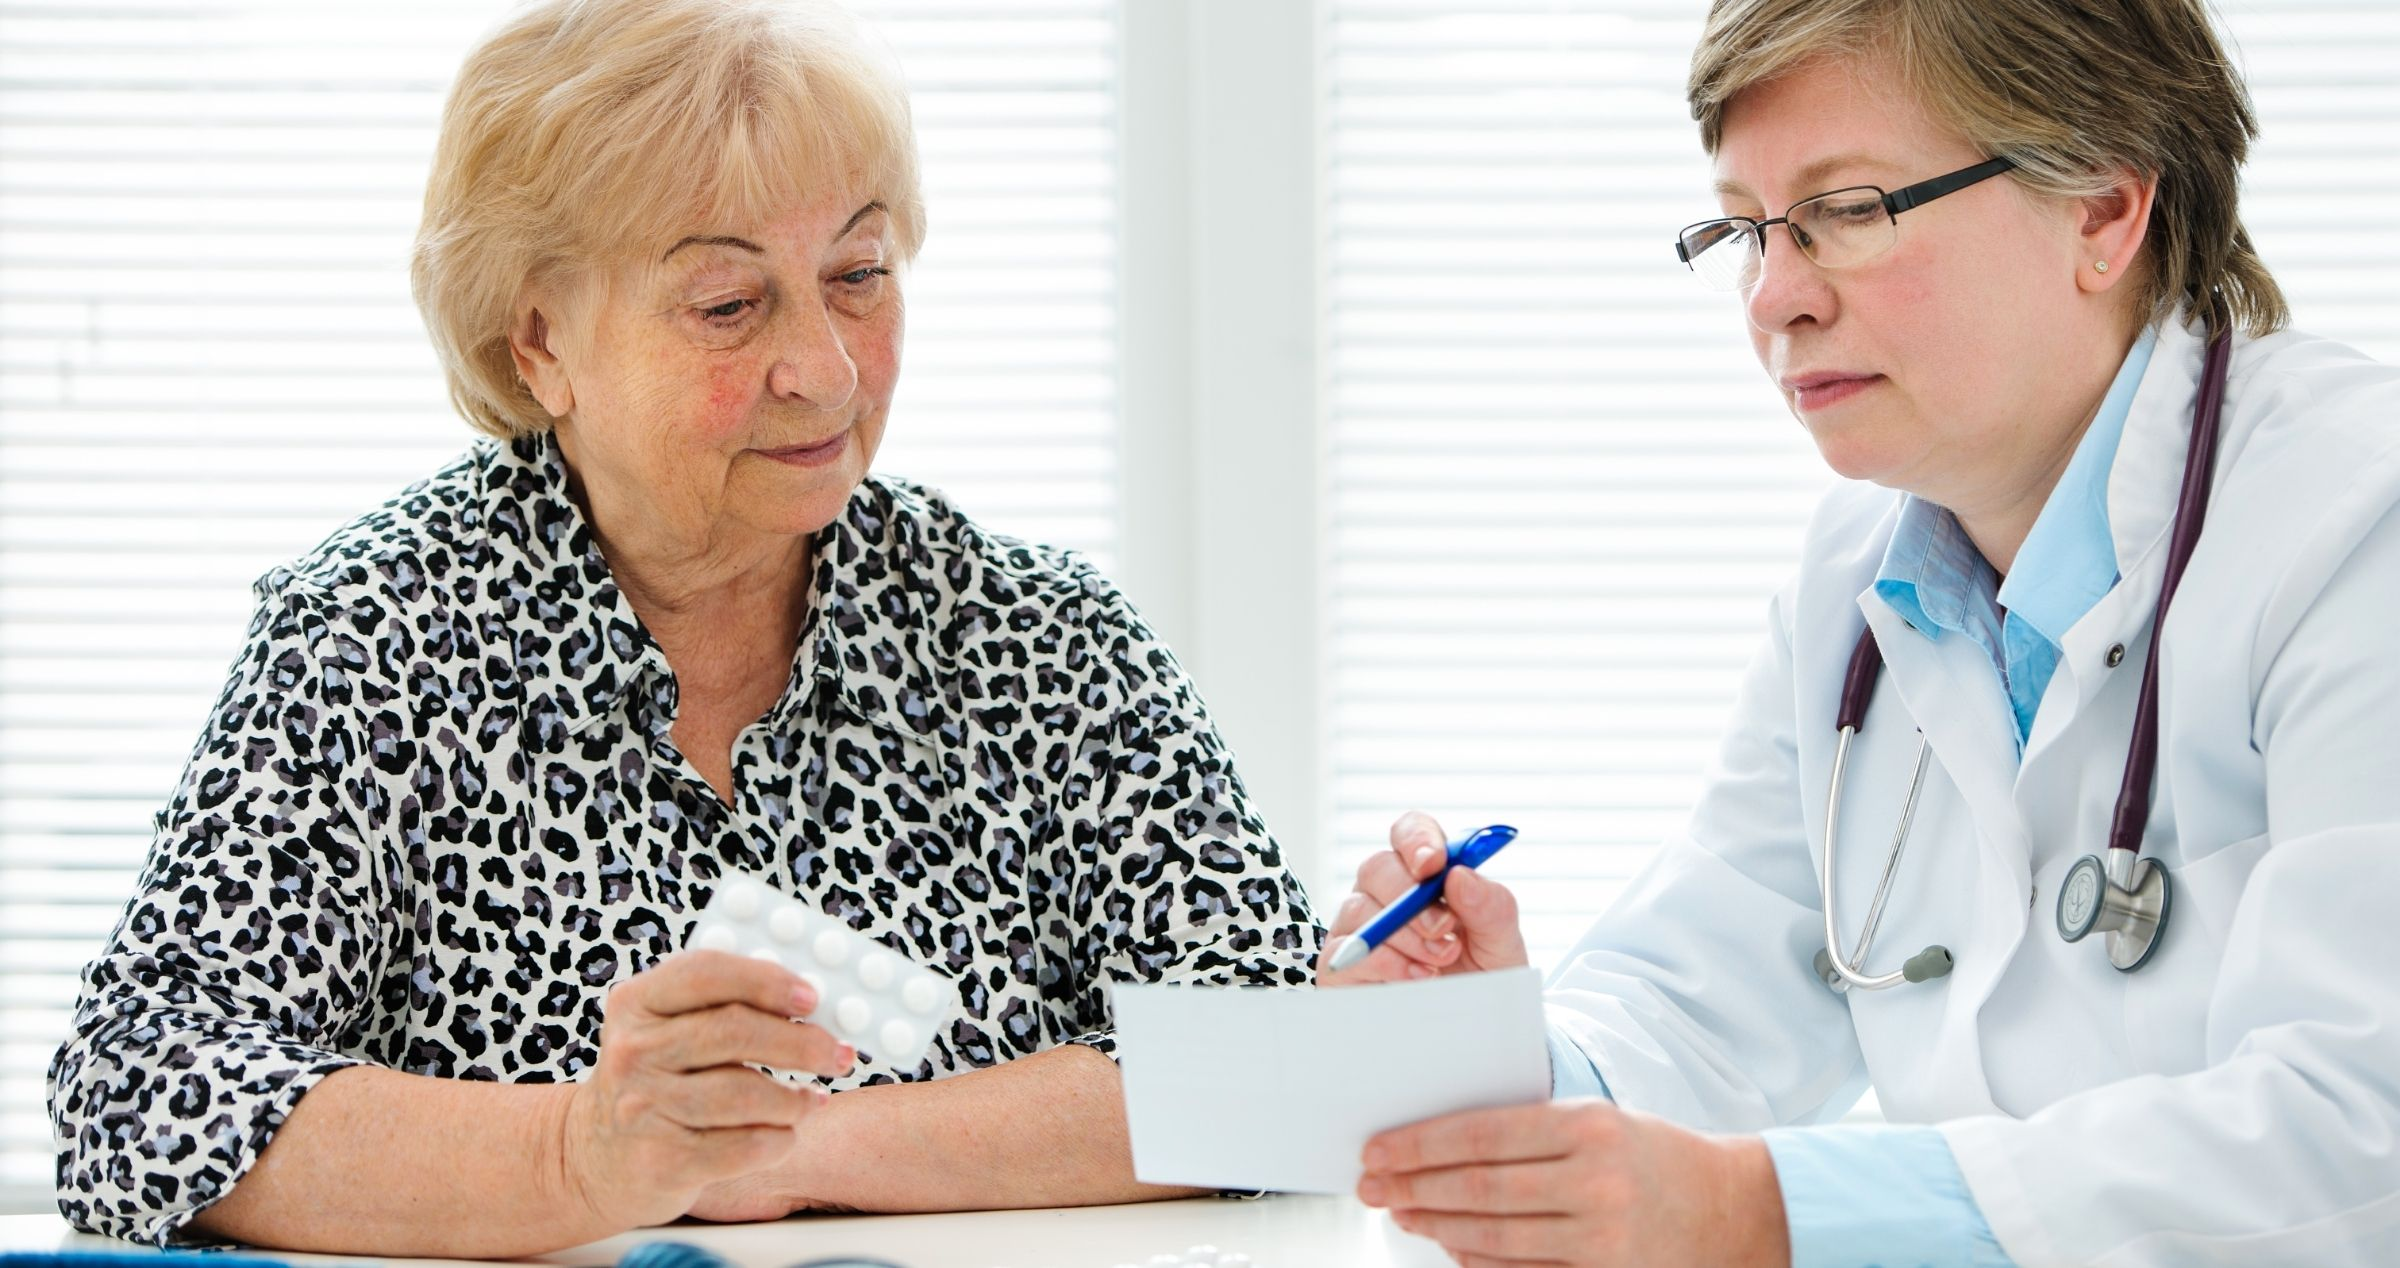 Patient sitting at desk with doctor